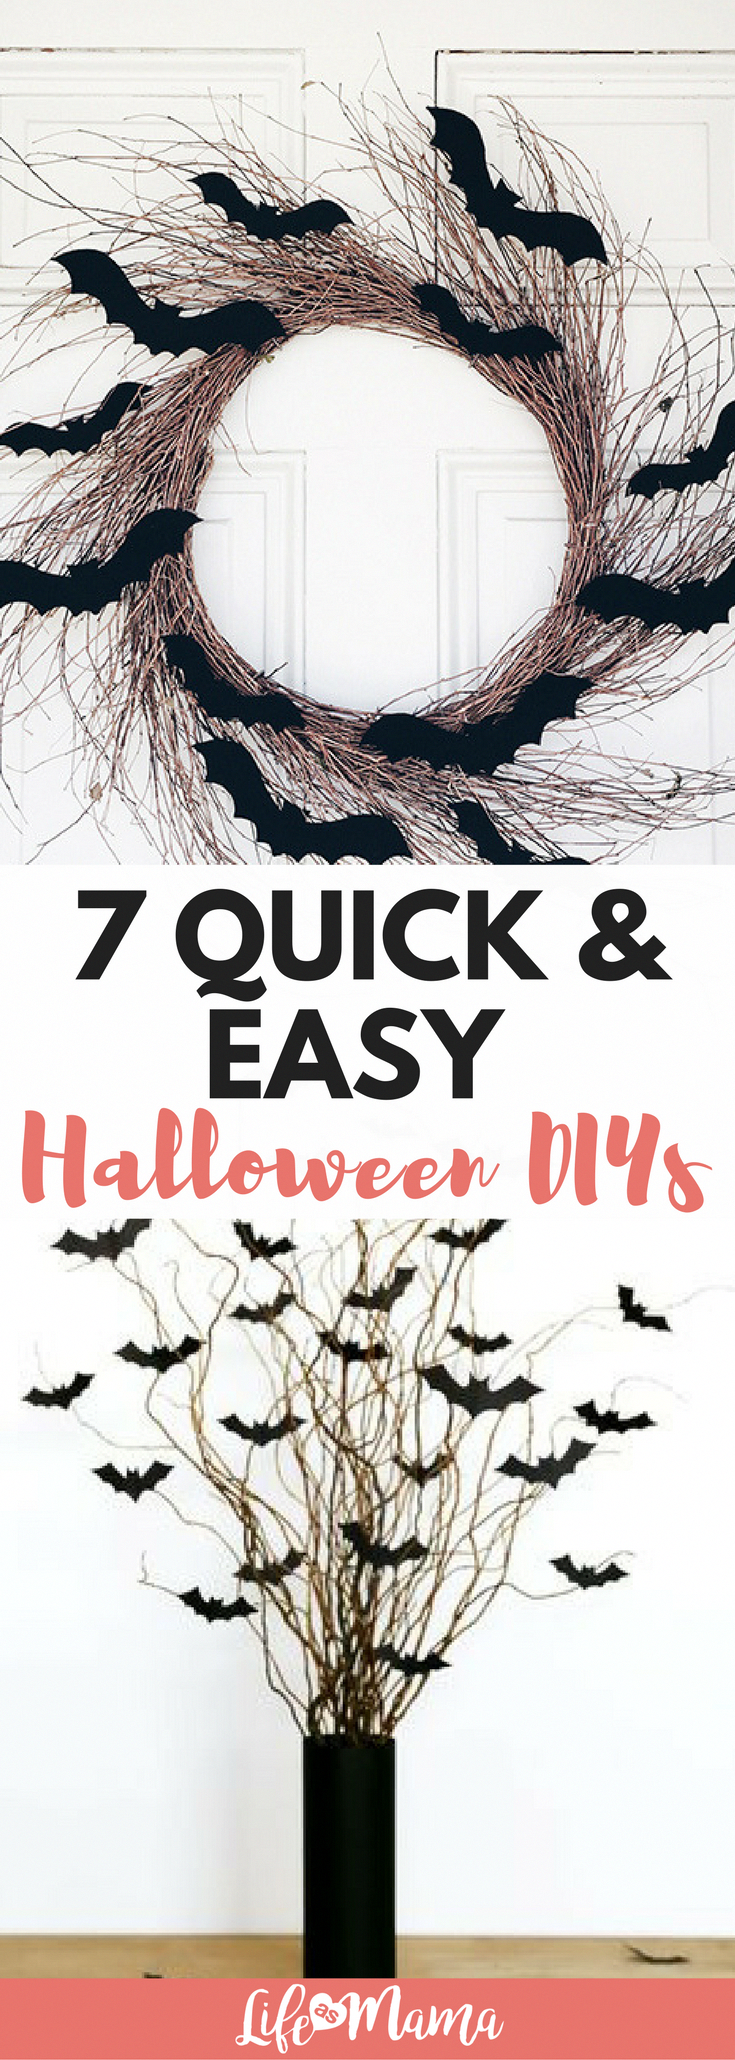 85e7e5b6a5 Halloween DIY's are here! I've found some fun ways to decorate to get you  in the Halloween spirit. #halloweendecorations